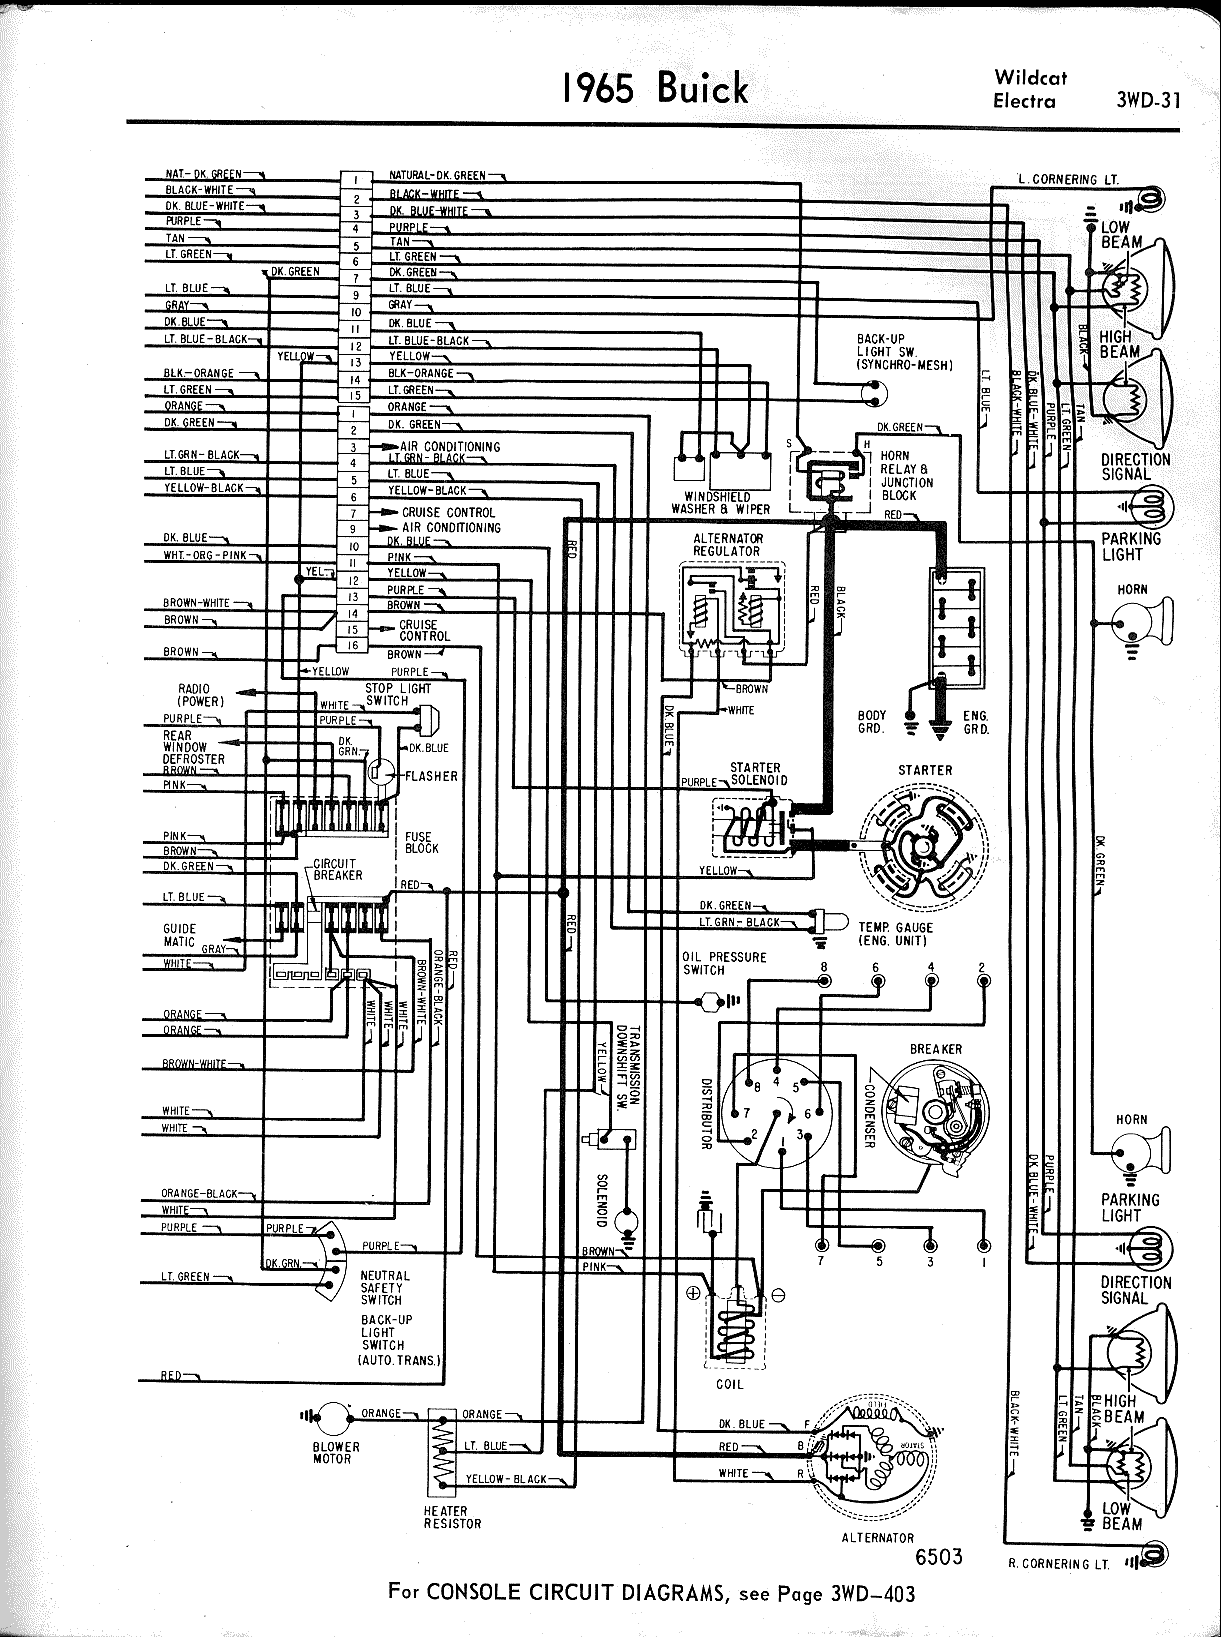 buick wiring diagrams: 1957-1965 65 riviera wiring diagram free picture schematic fender squier wiring diagram free picture schematic